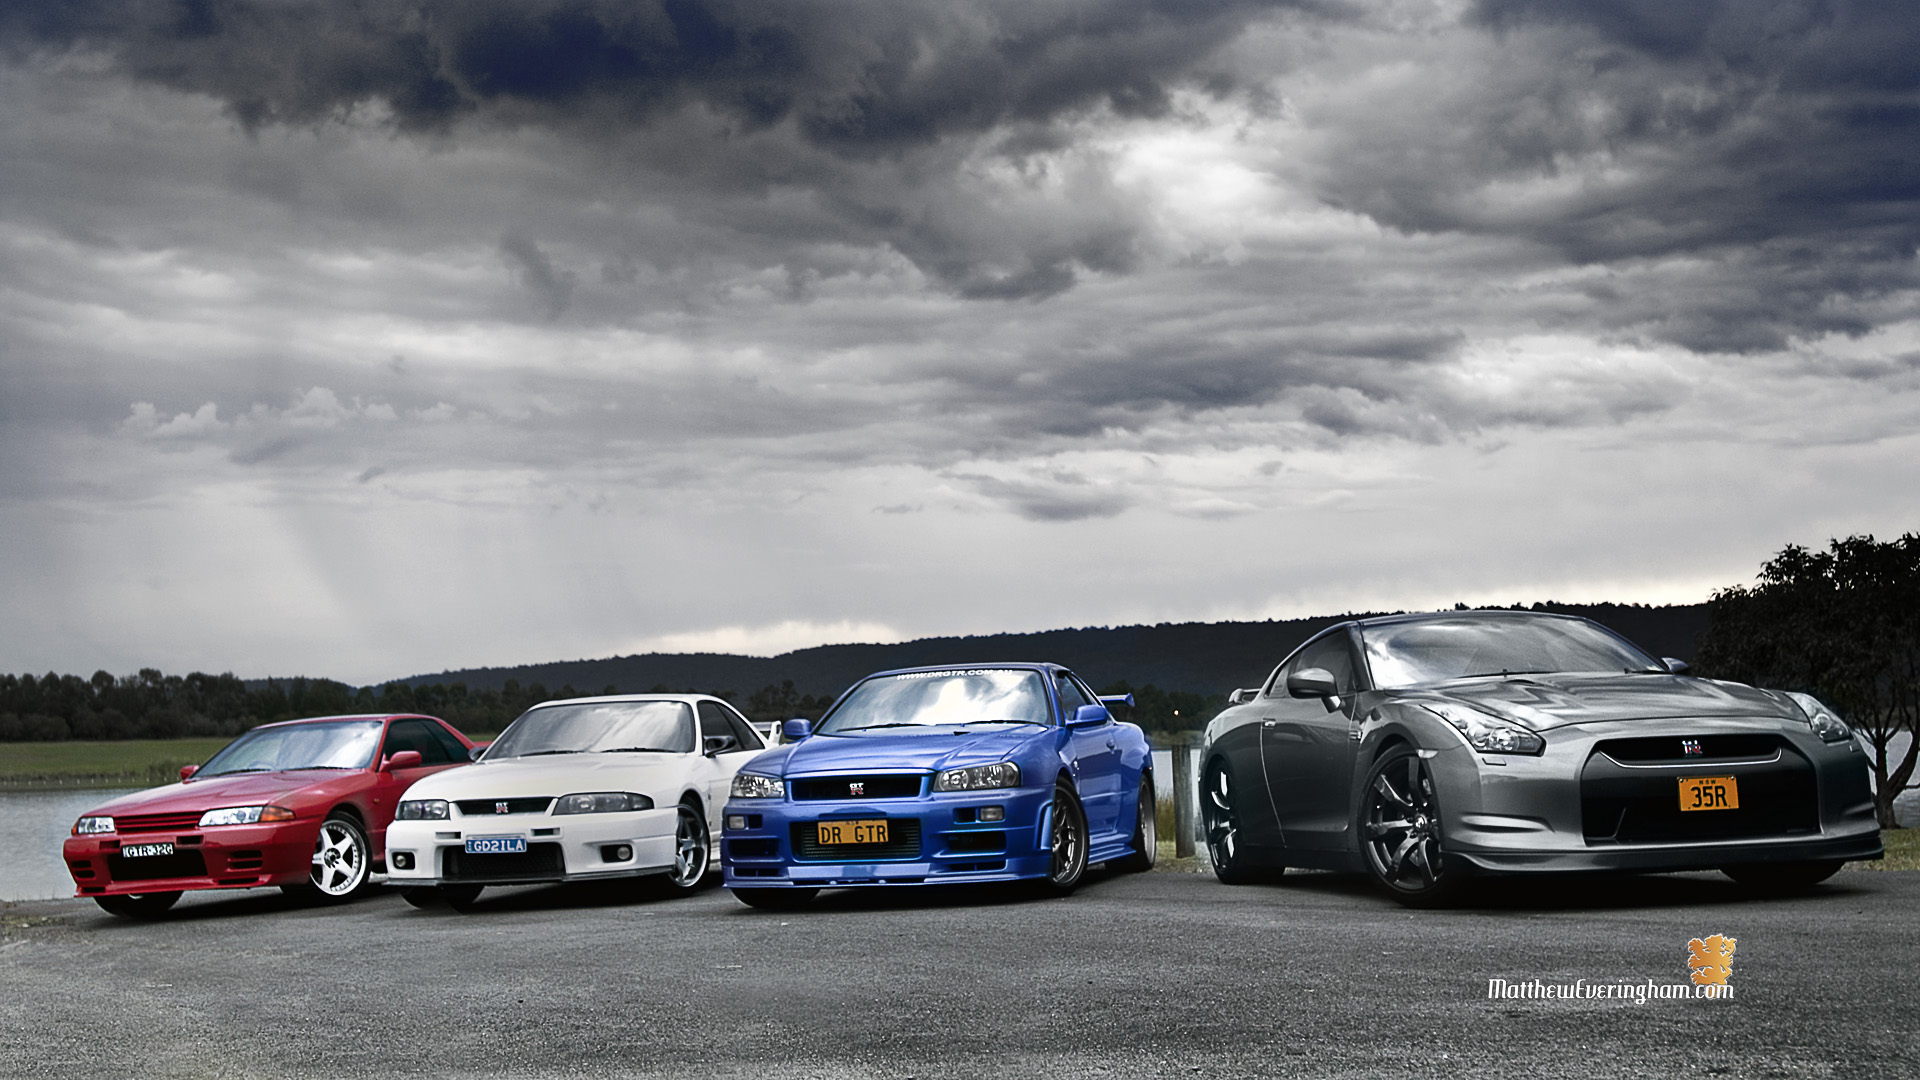 The Best Nissian Skyline Wallpaper  Background